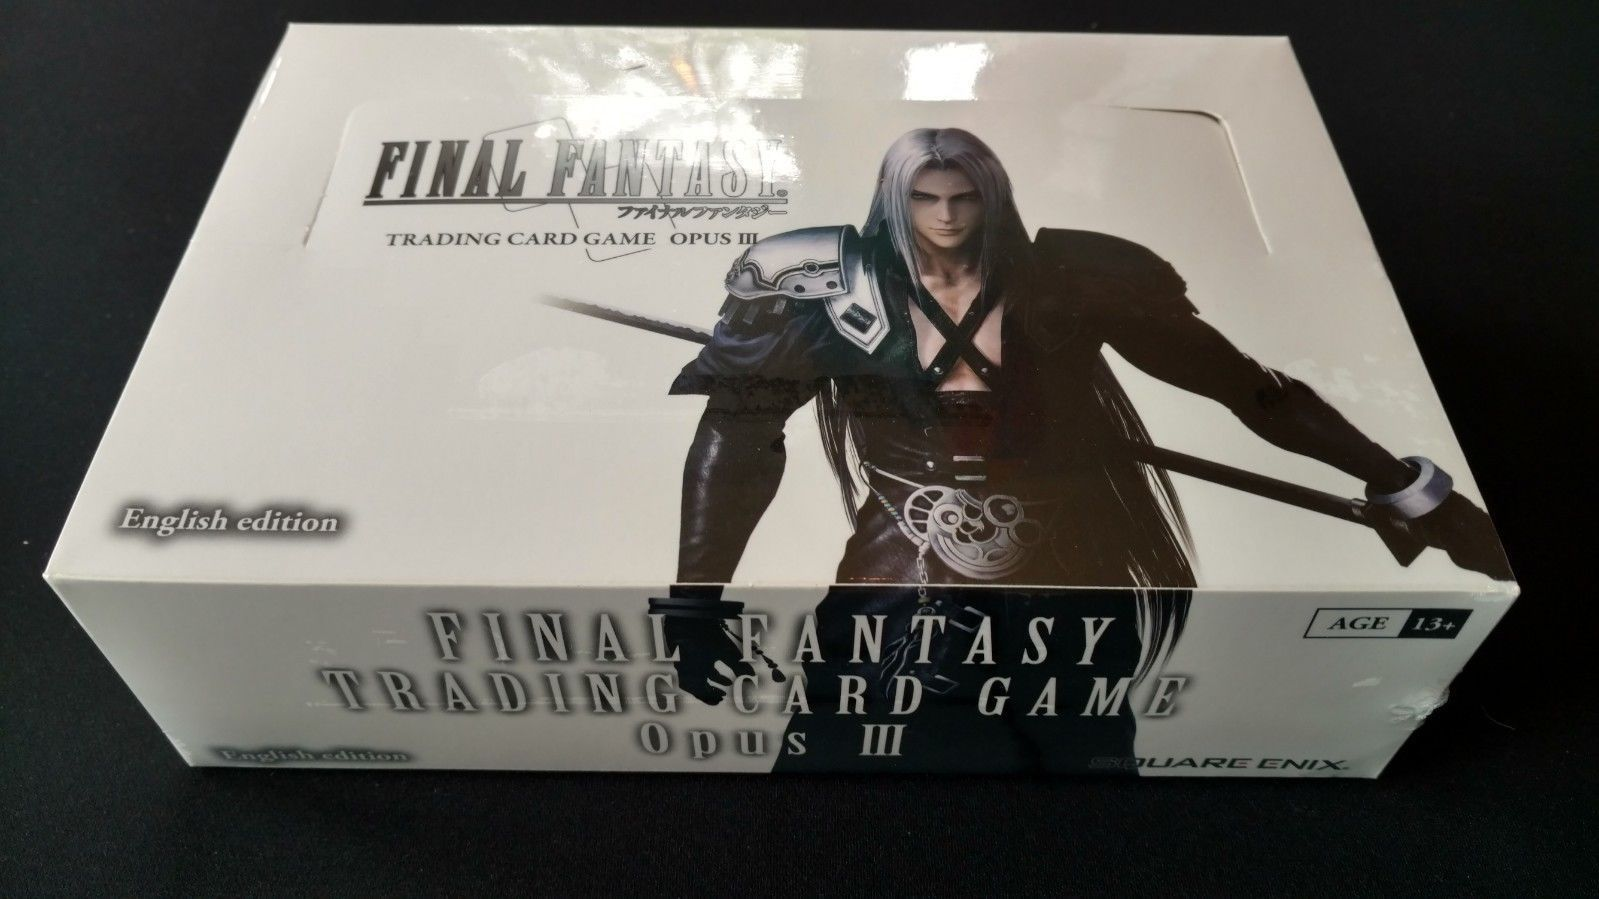 FINAL FANTASY TCG OPUS 4 IV BOOSTER SEALED BOX 36 PACKS ENGLISH BRAND NEW